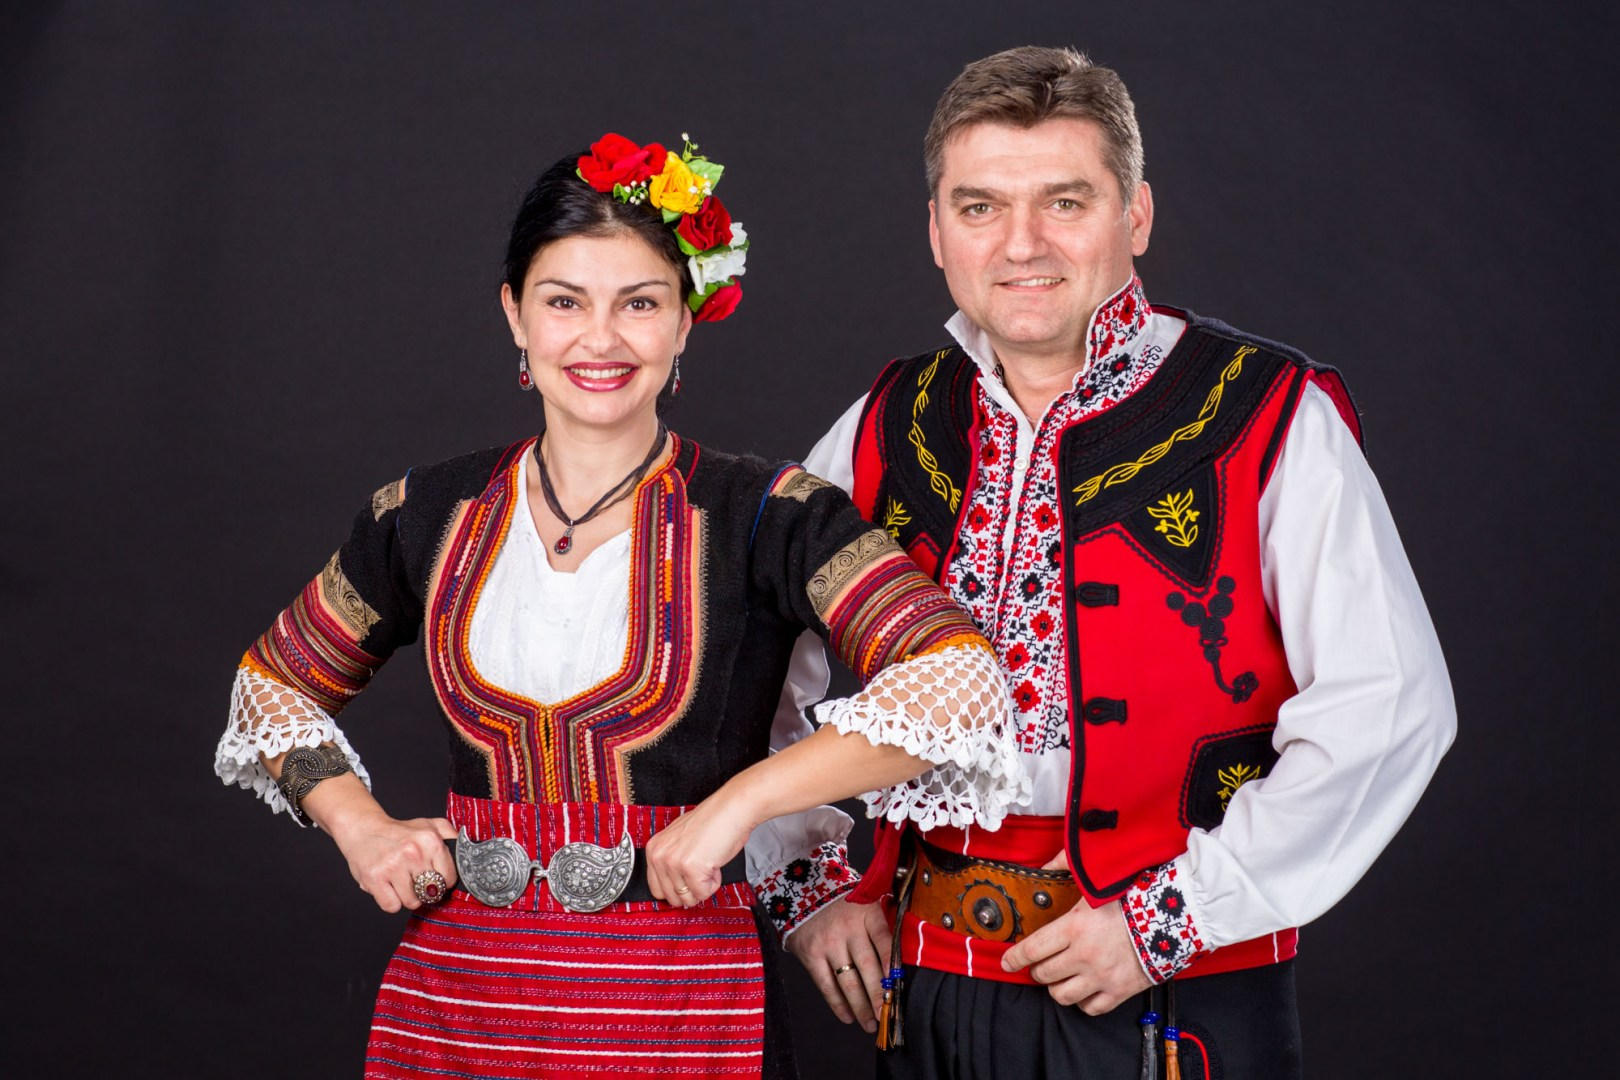 folk_costume_classic_photostudio